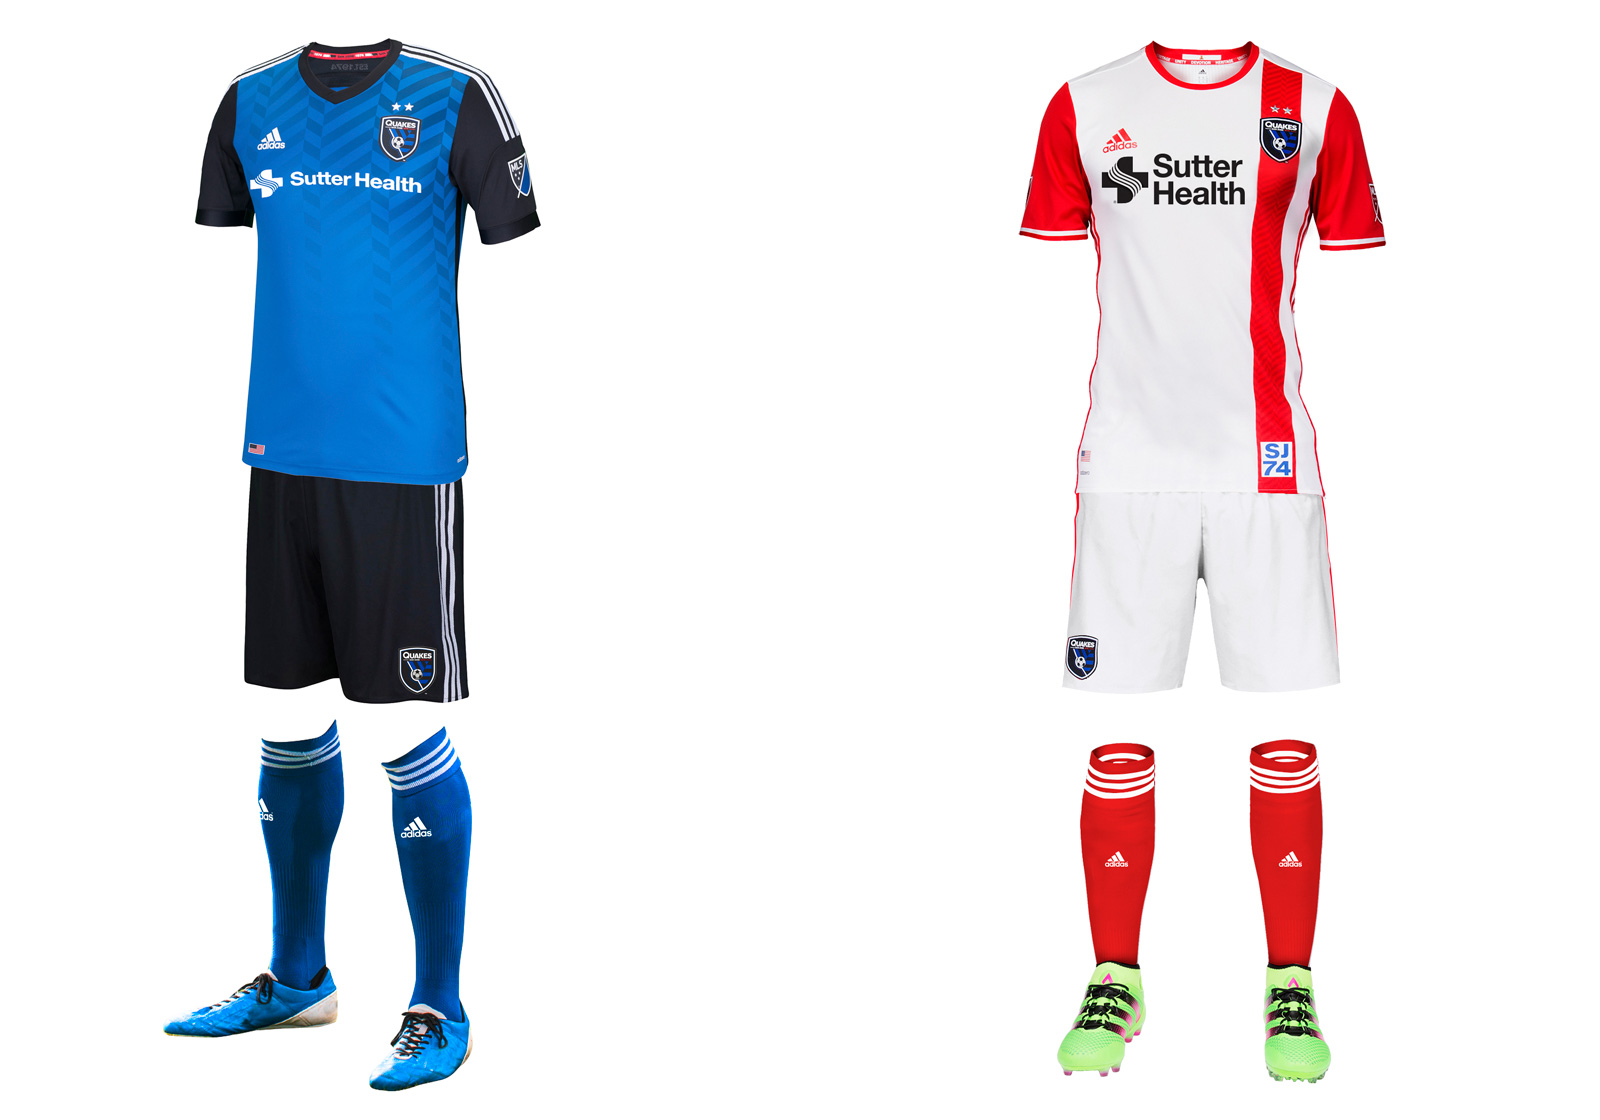 San Jose's 2014 brand refresh now feels finished with the introduction of a much-improved away set that actually features some red, which connects the modern-day Quakes to their 1970s and '80s predecessors. The red stripe, sleeves and socks create a unique, balanced look that ties the club's crest, primary and secondary kits together. There's also a tiny scorpion inside the neck paying tribute to the branding fiasco that was the San Jose Clash. The sharp blue-and-black home uniform carries over from last season with the addition of the Sutter Health logo. The Earthquakes were the last holdout—for the first time, every MLS team has a jersey sponsor.